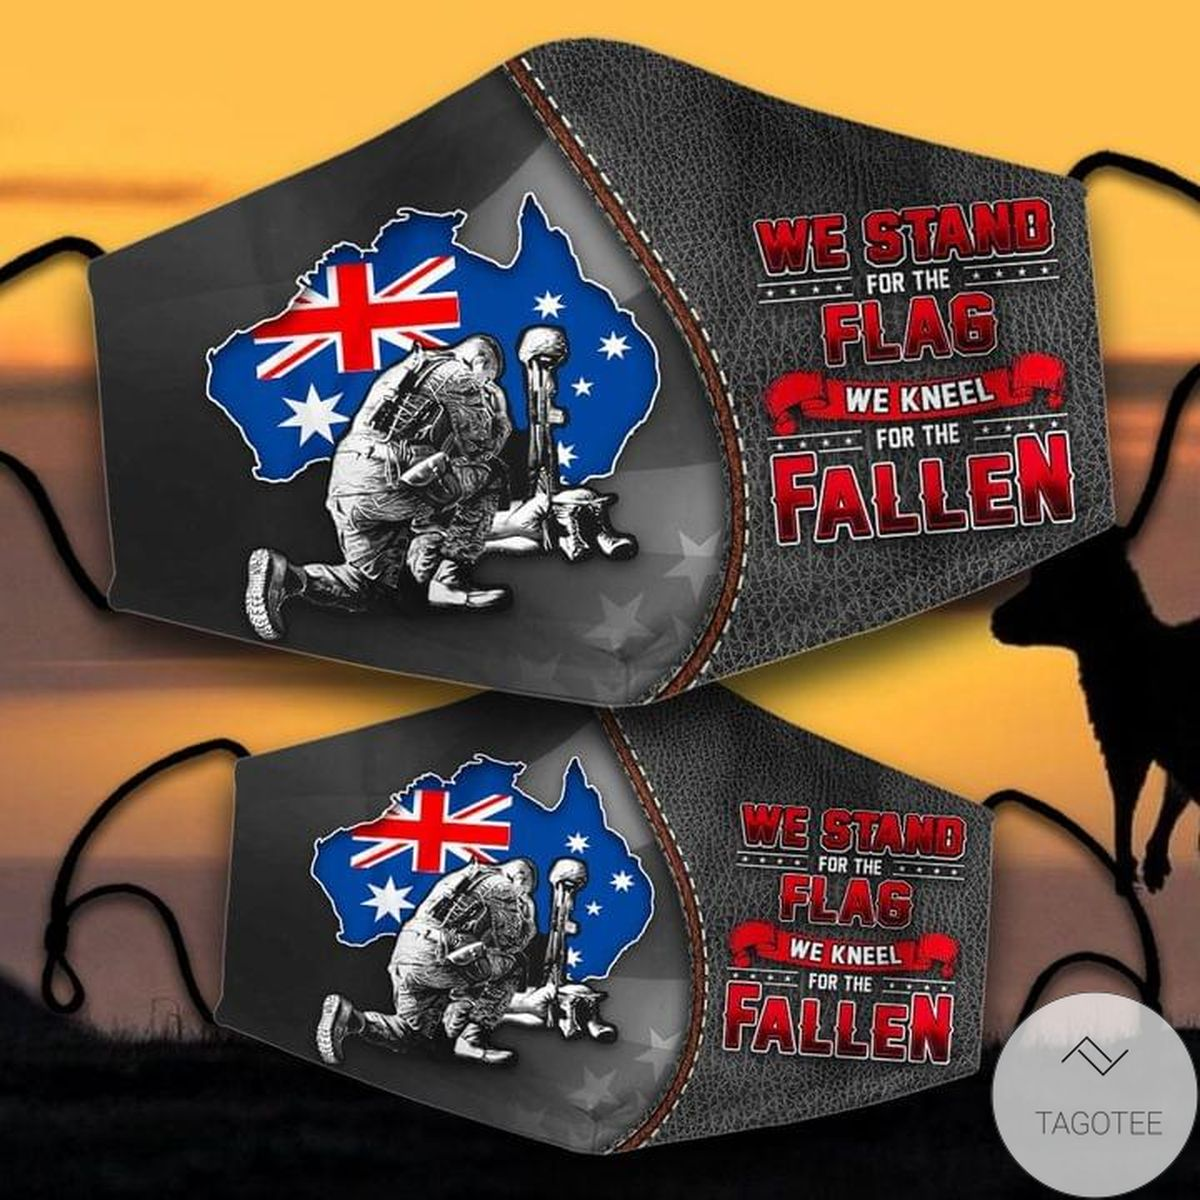 We Stand For The Flag And Kneel For The Fallen Australian Veteran Mask